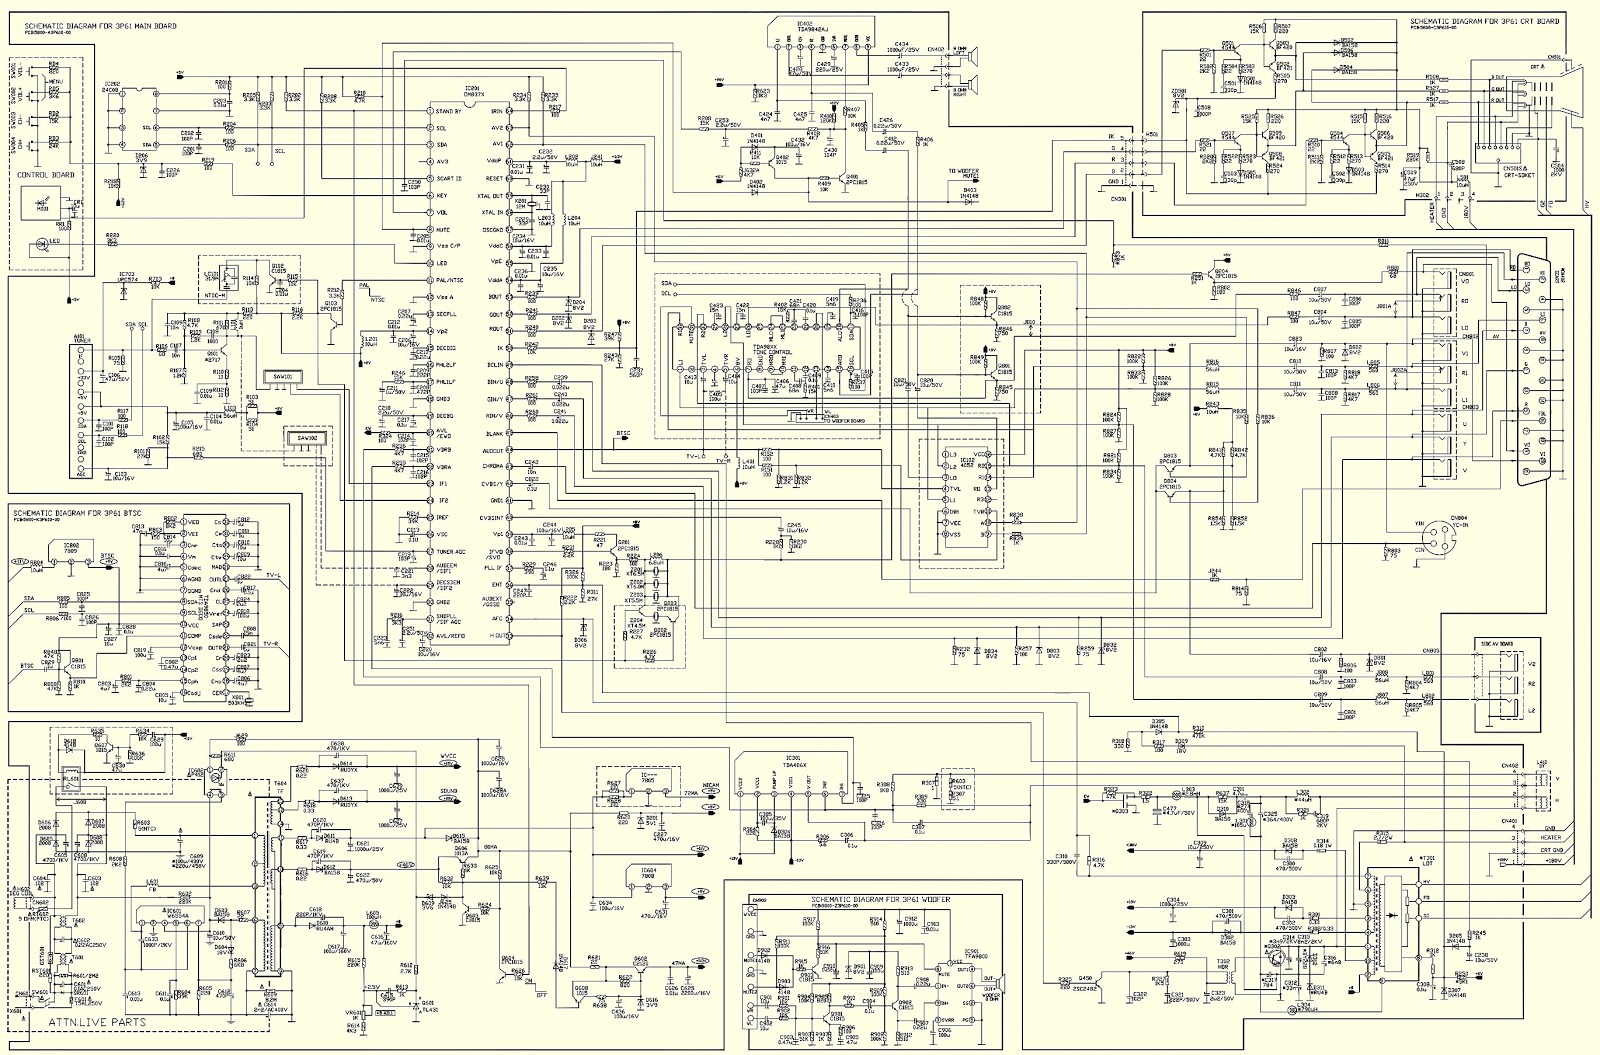 Fabulous Philips 21Pt9457 55 Flat Crt Tv Circuit Diagram And Adjustments Wiring Digital Resources Remcakbiperorg